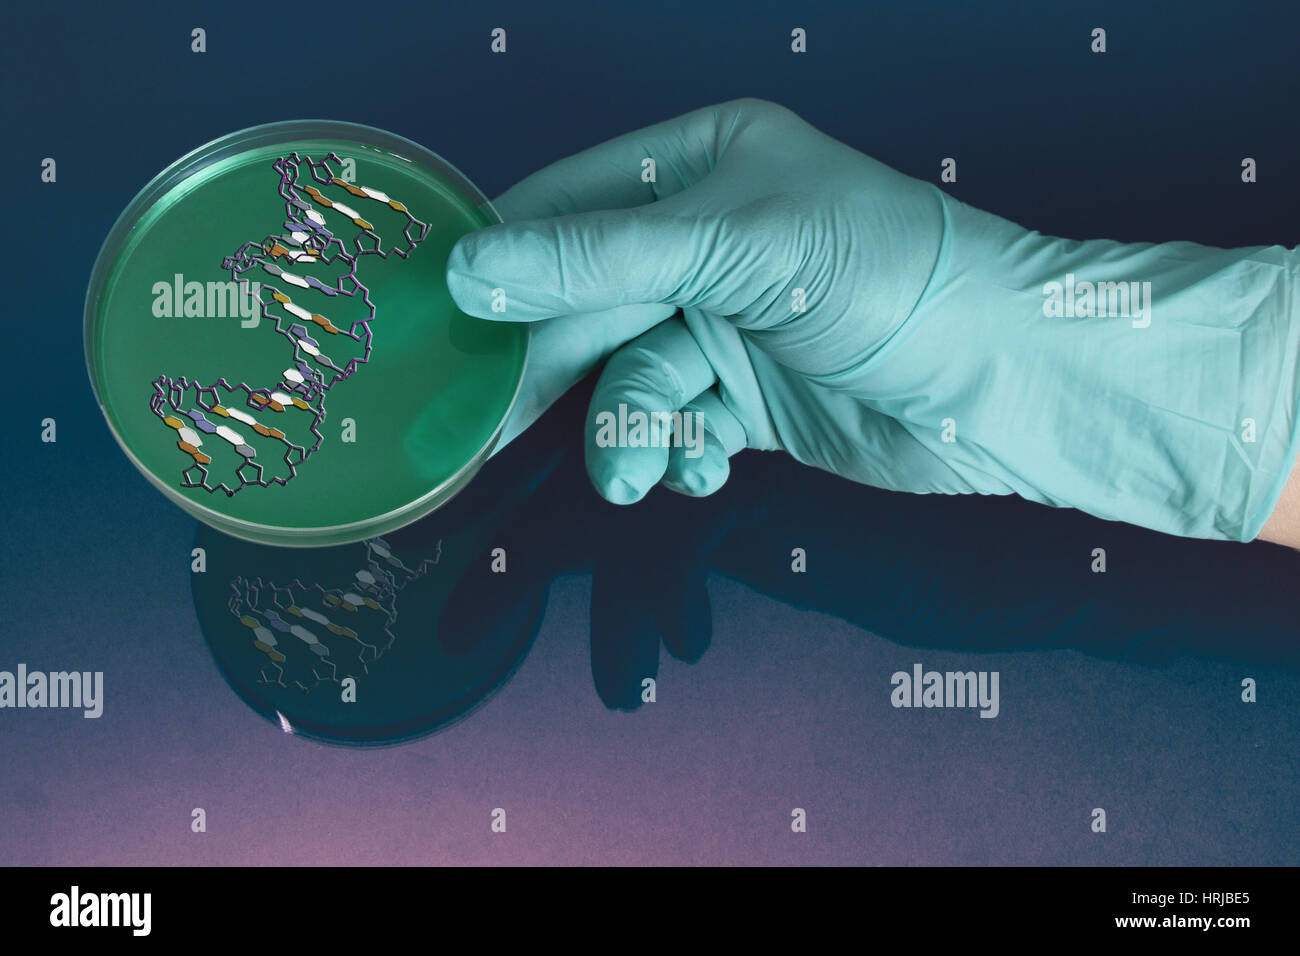 Genetic Research - Stock Image